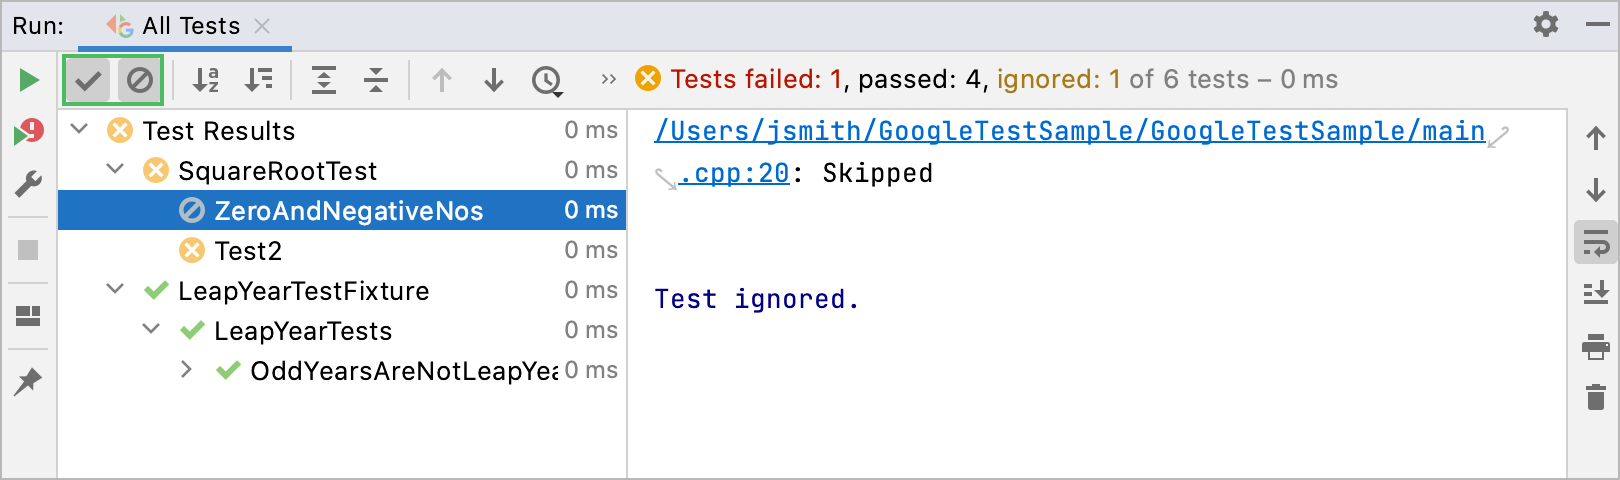 Show results of passed and skipped tests